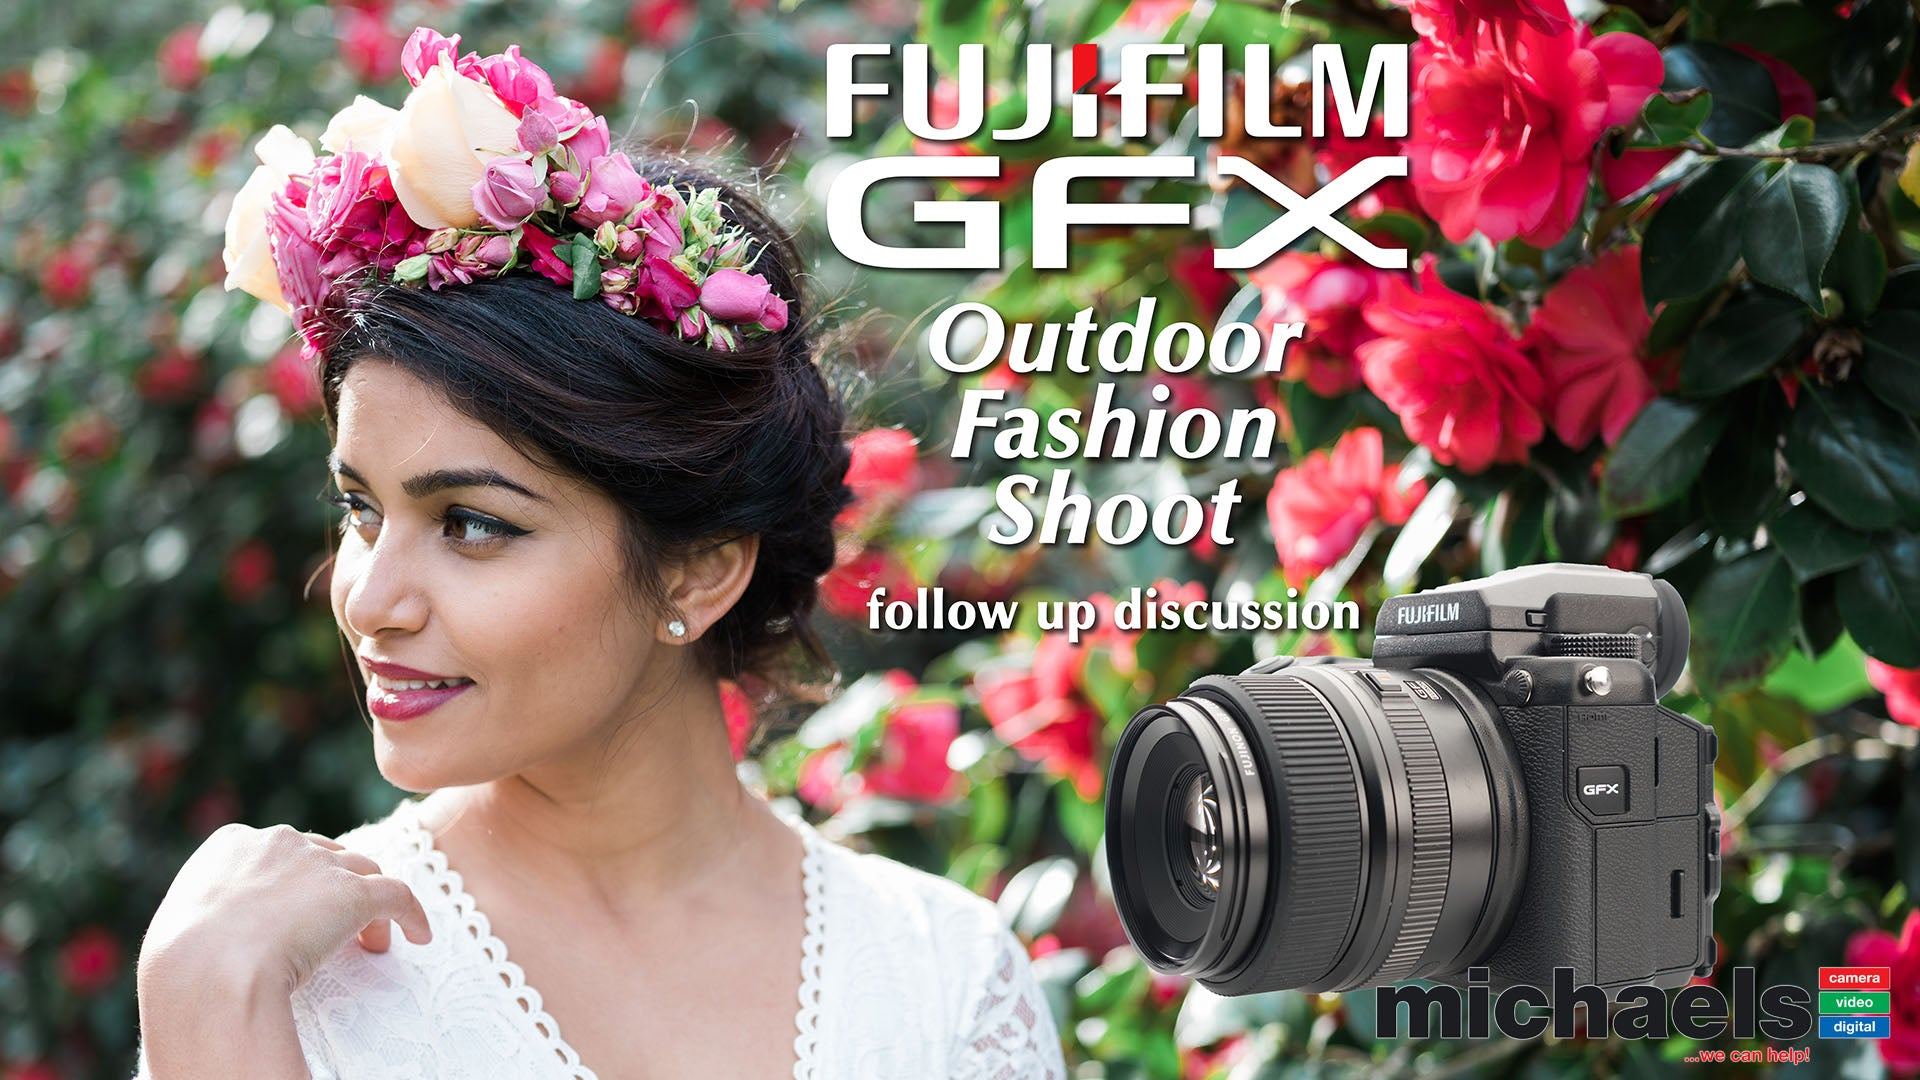 Outdoor Fashion Shoot with the Fujifilm GFX 50S - Follow up discussion and samples